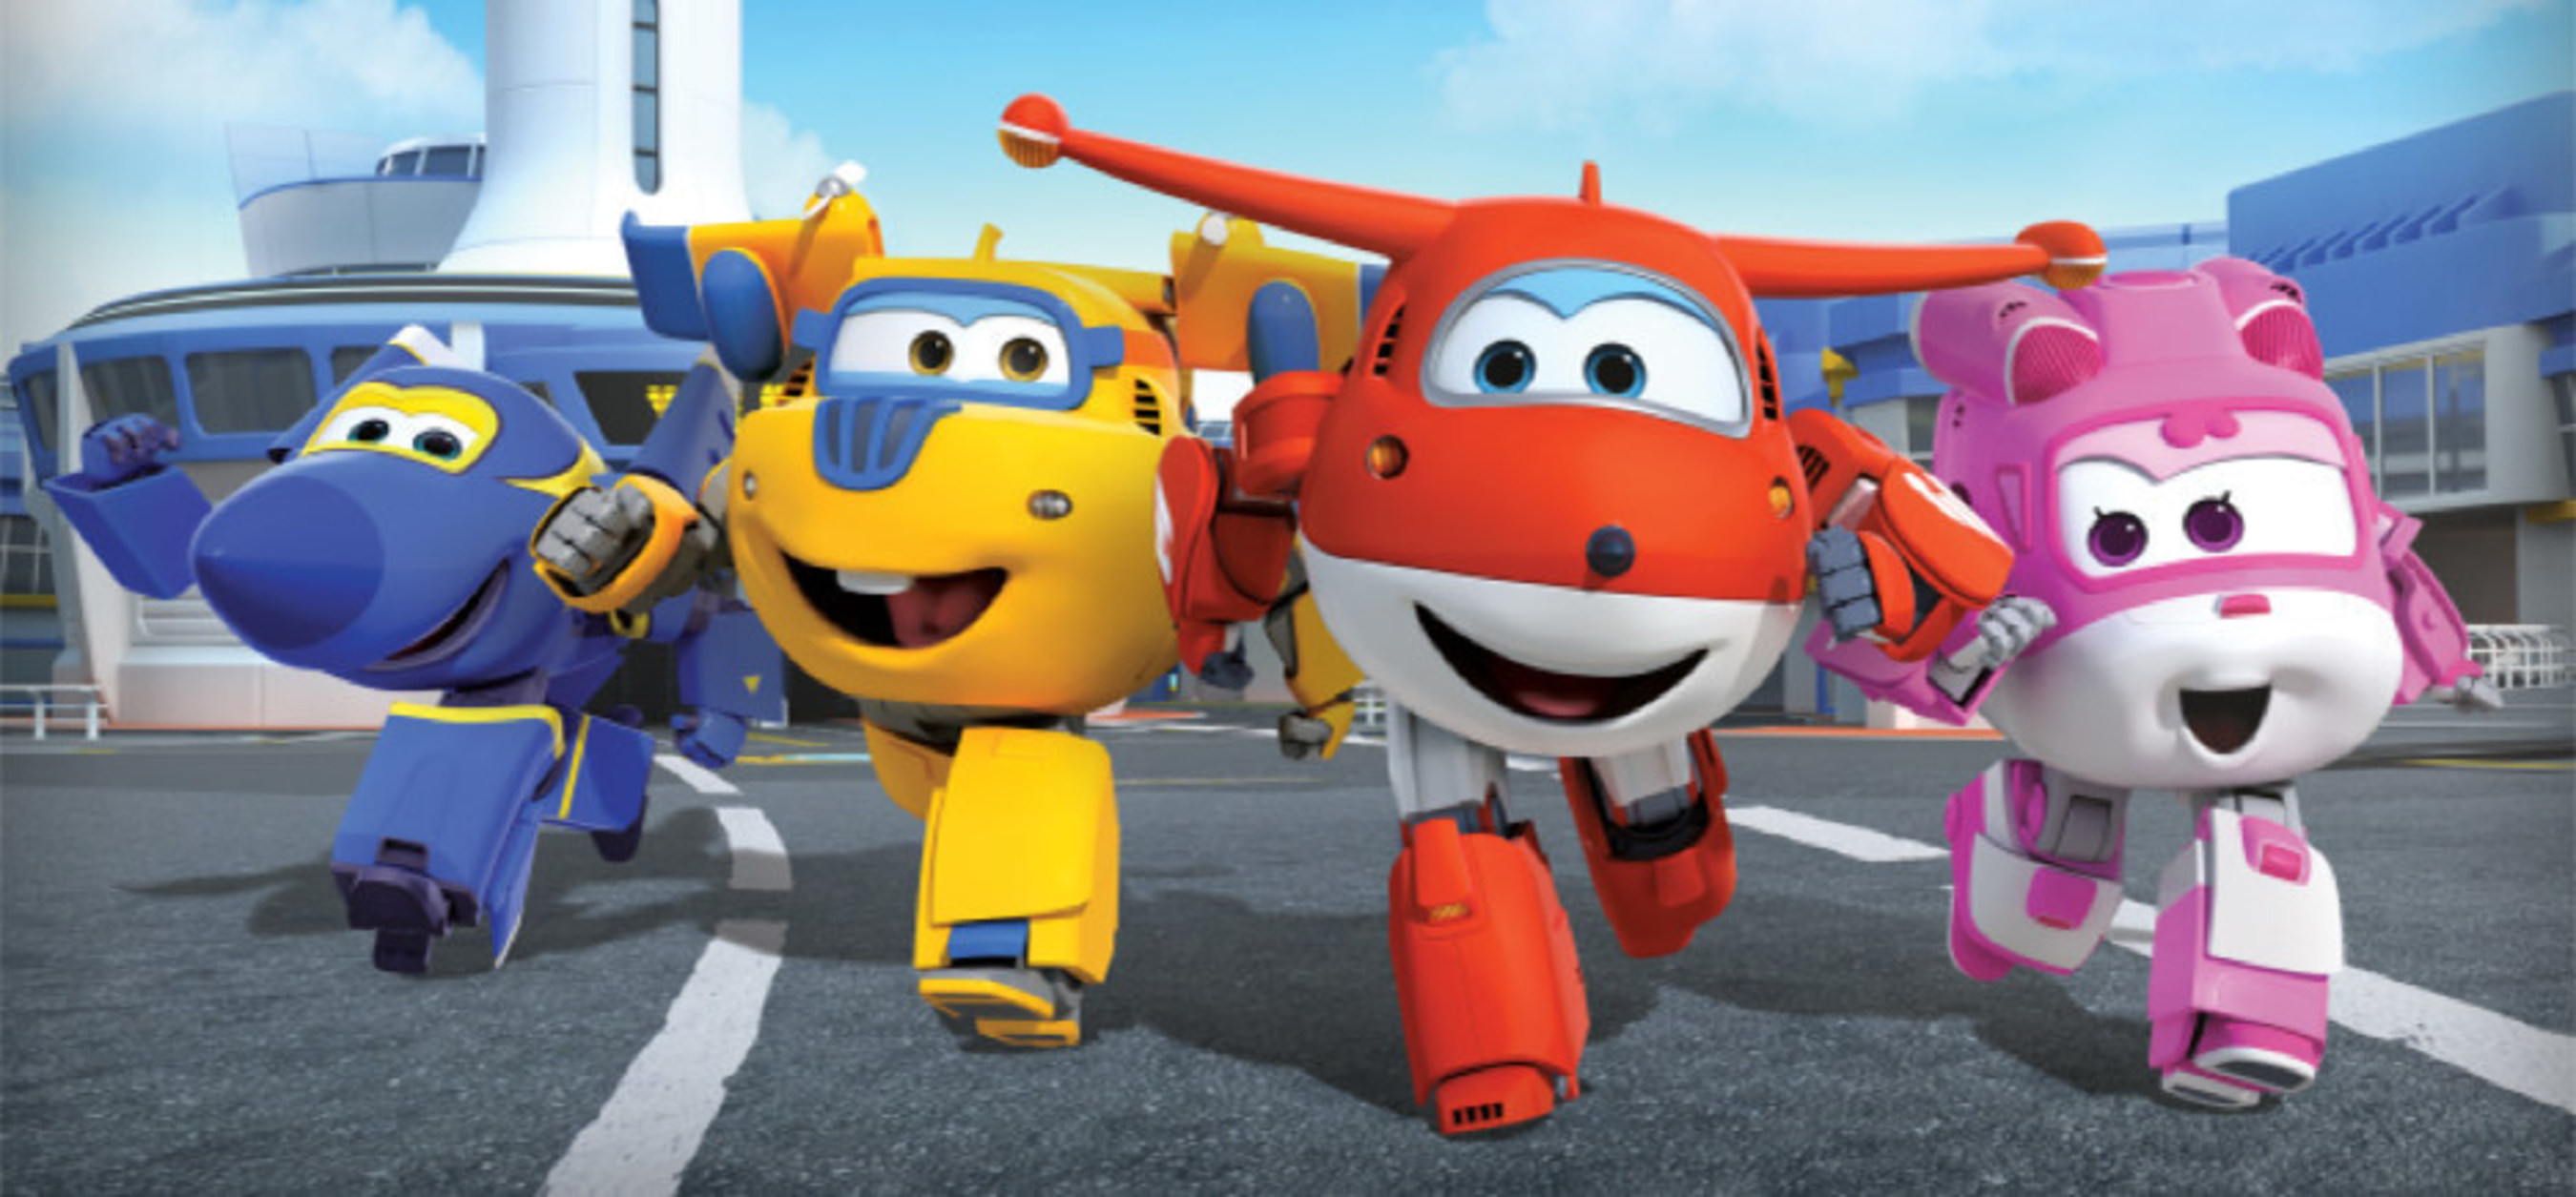 Super Wings Property Thrives After Successful Take Off in North America